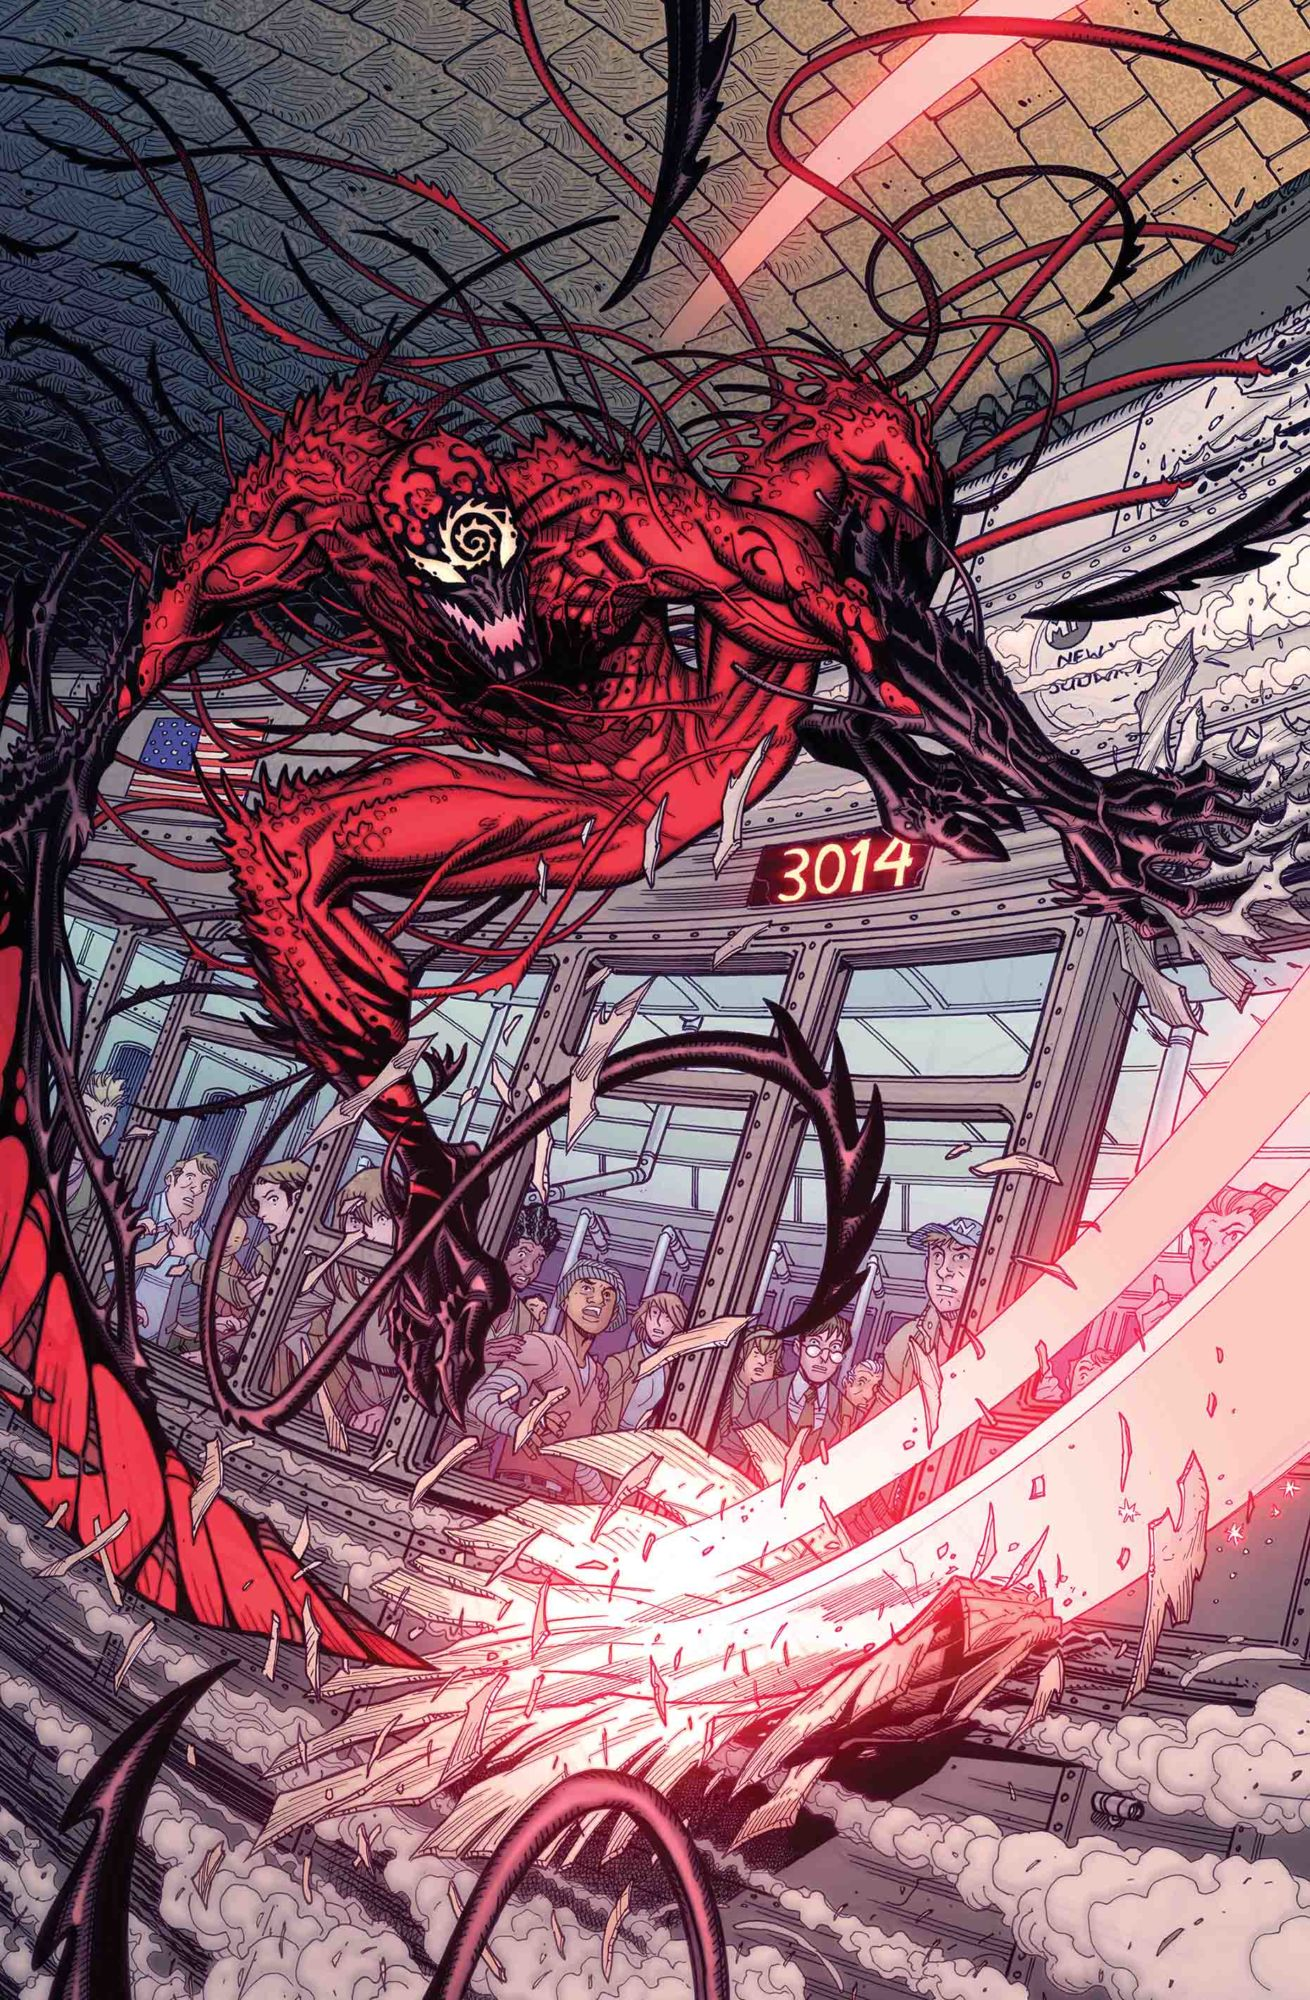 Absolute Carnage #1 Will Cost $7.99, #2 Will Be $4.99